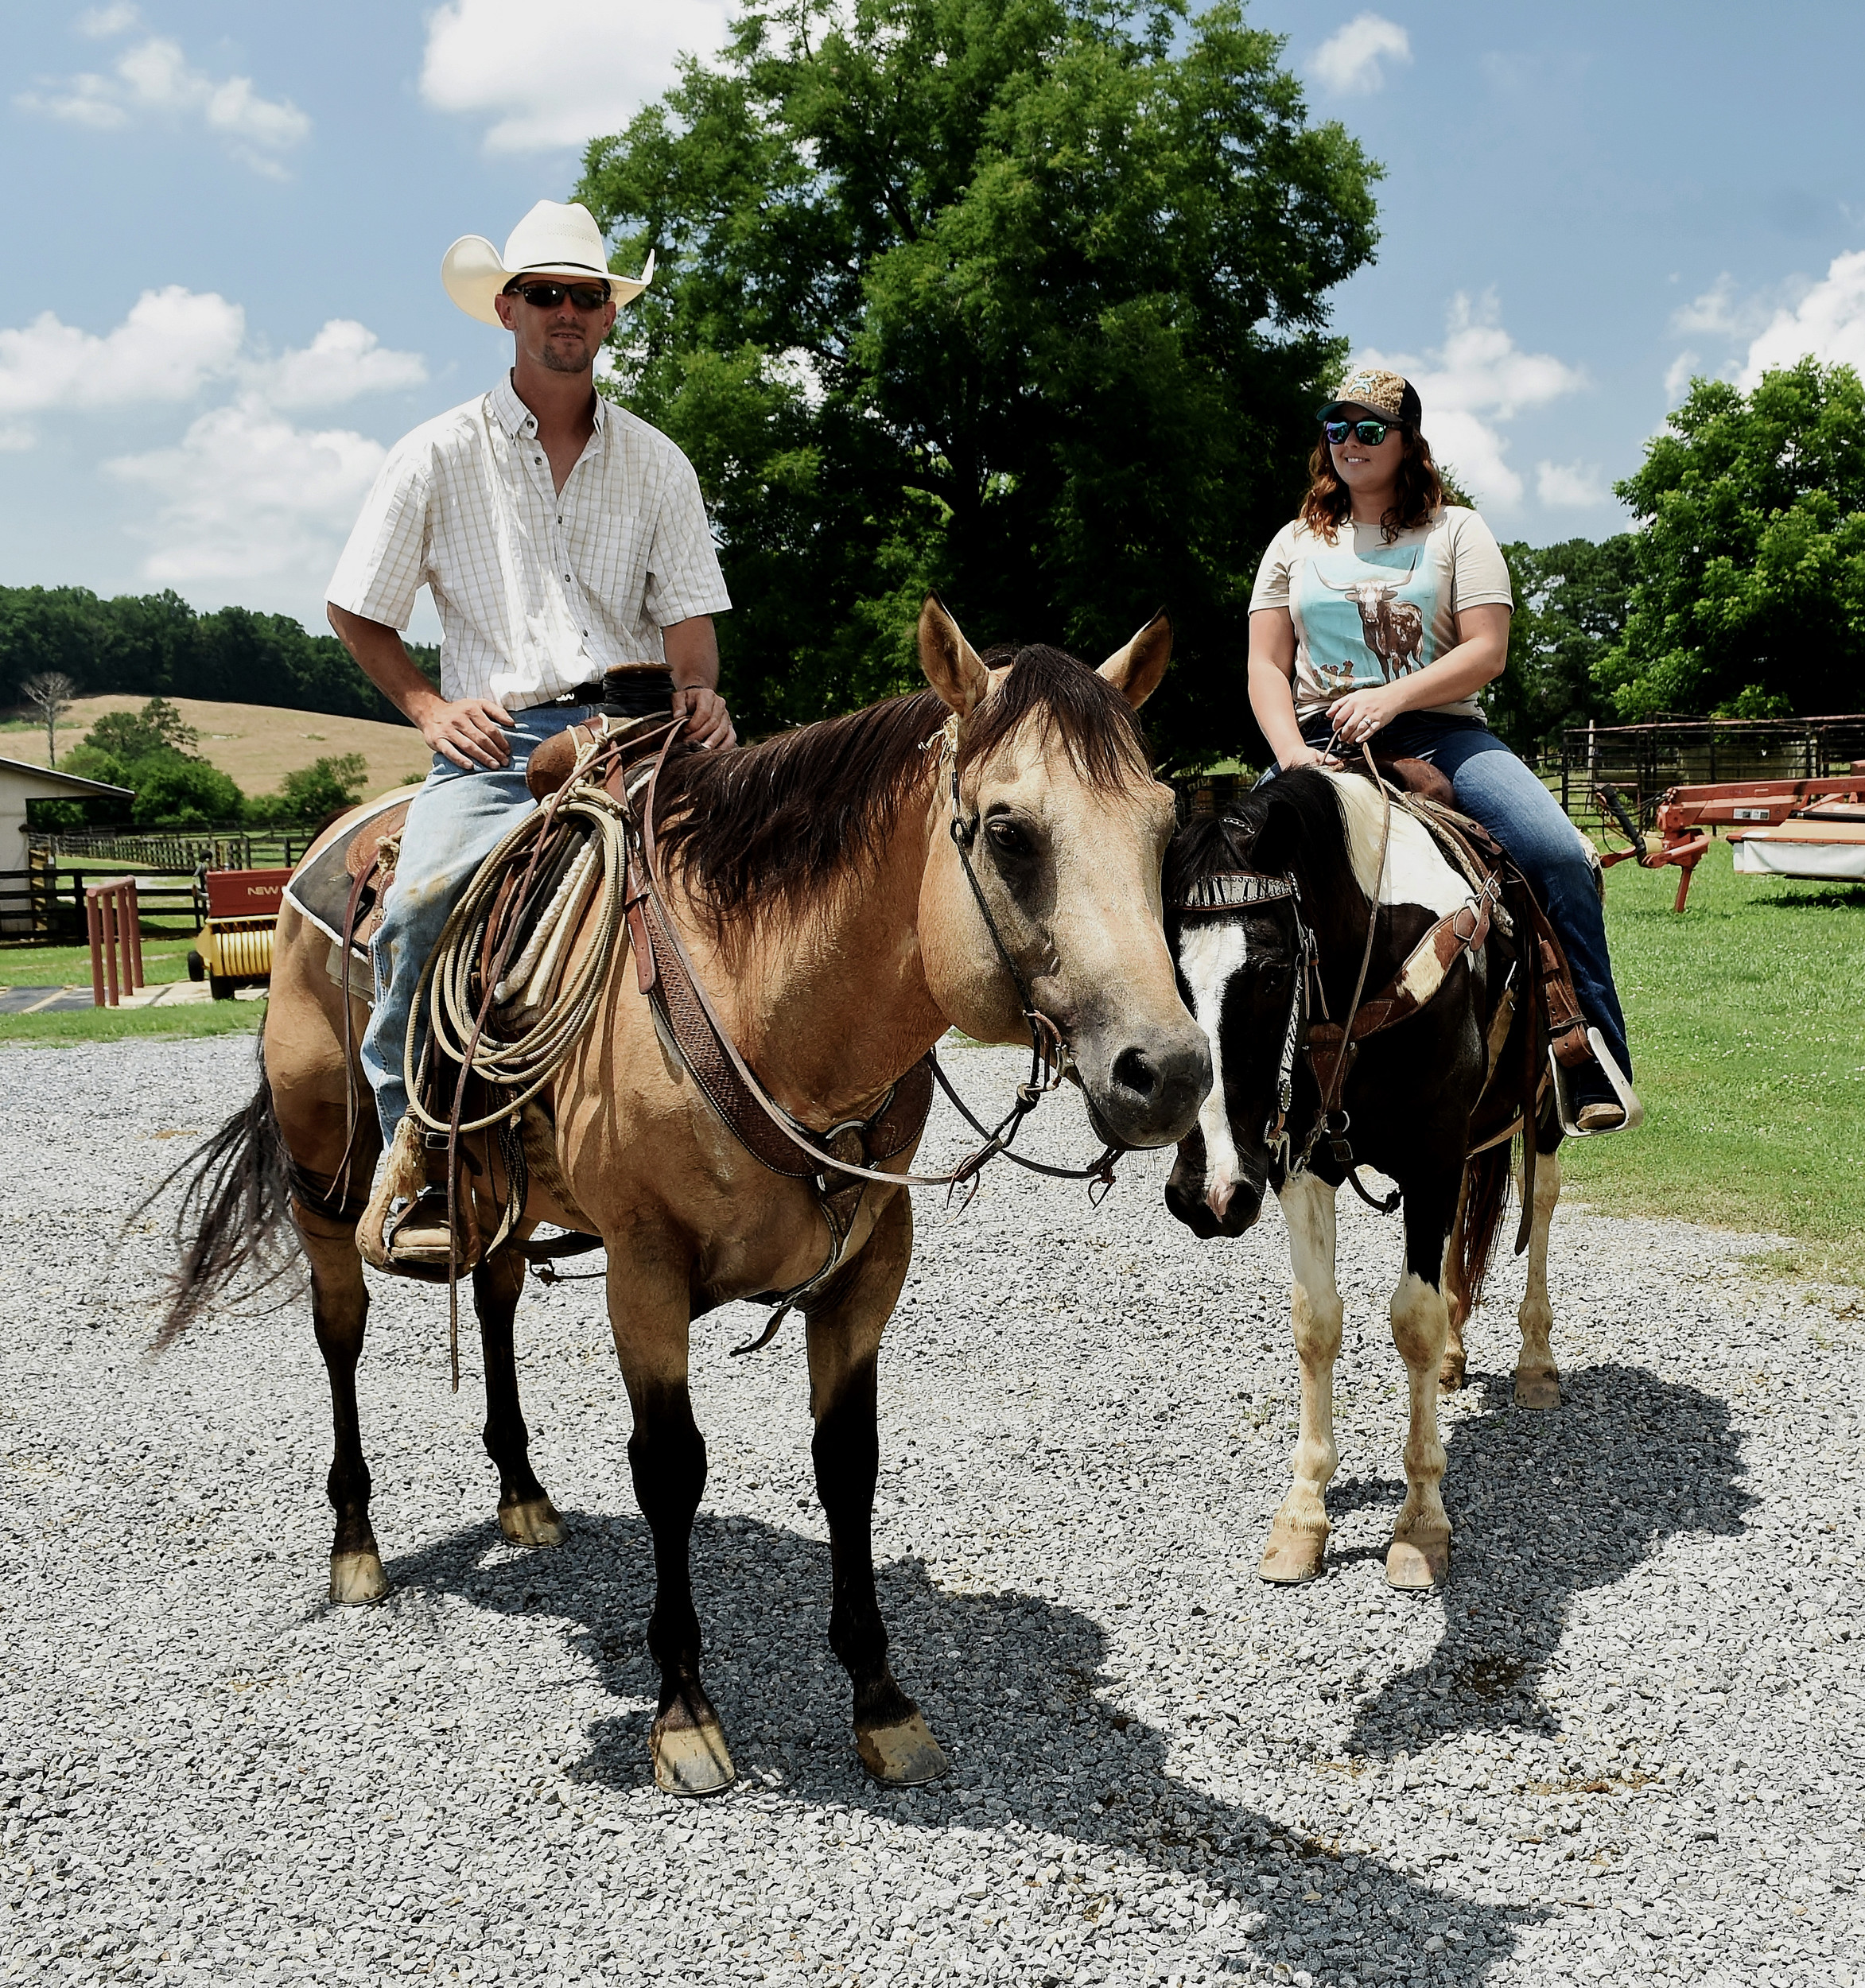 Jonathan Watkins and his wife, Jessica, cover most of their farm on horseback.